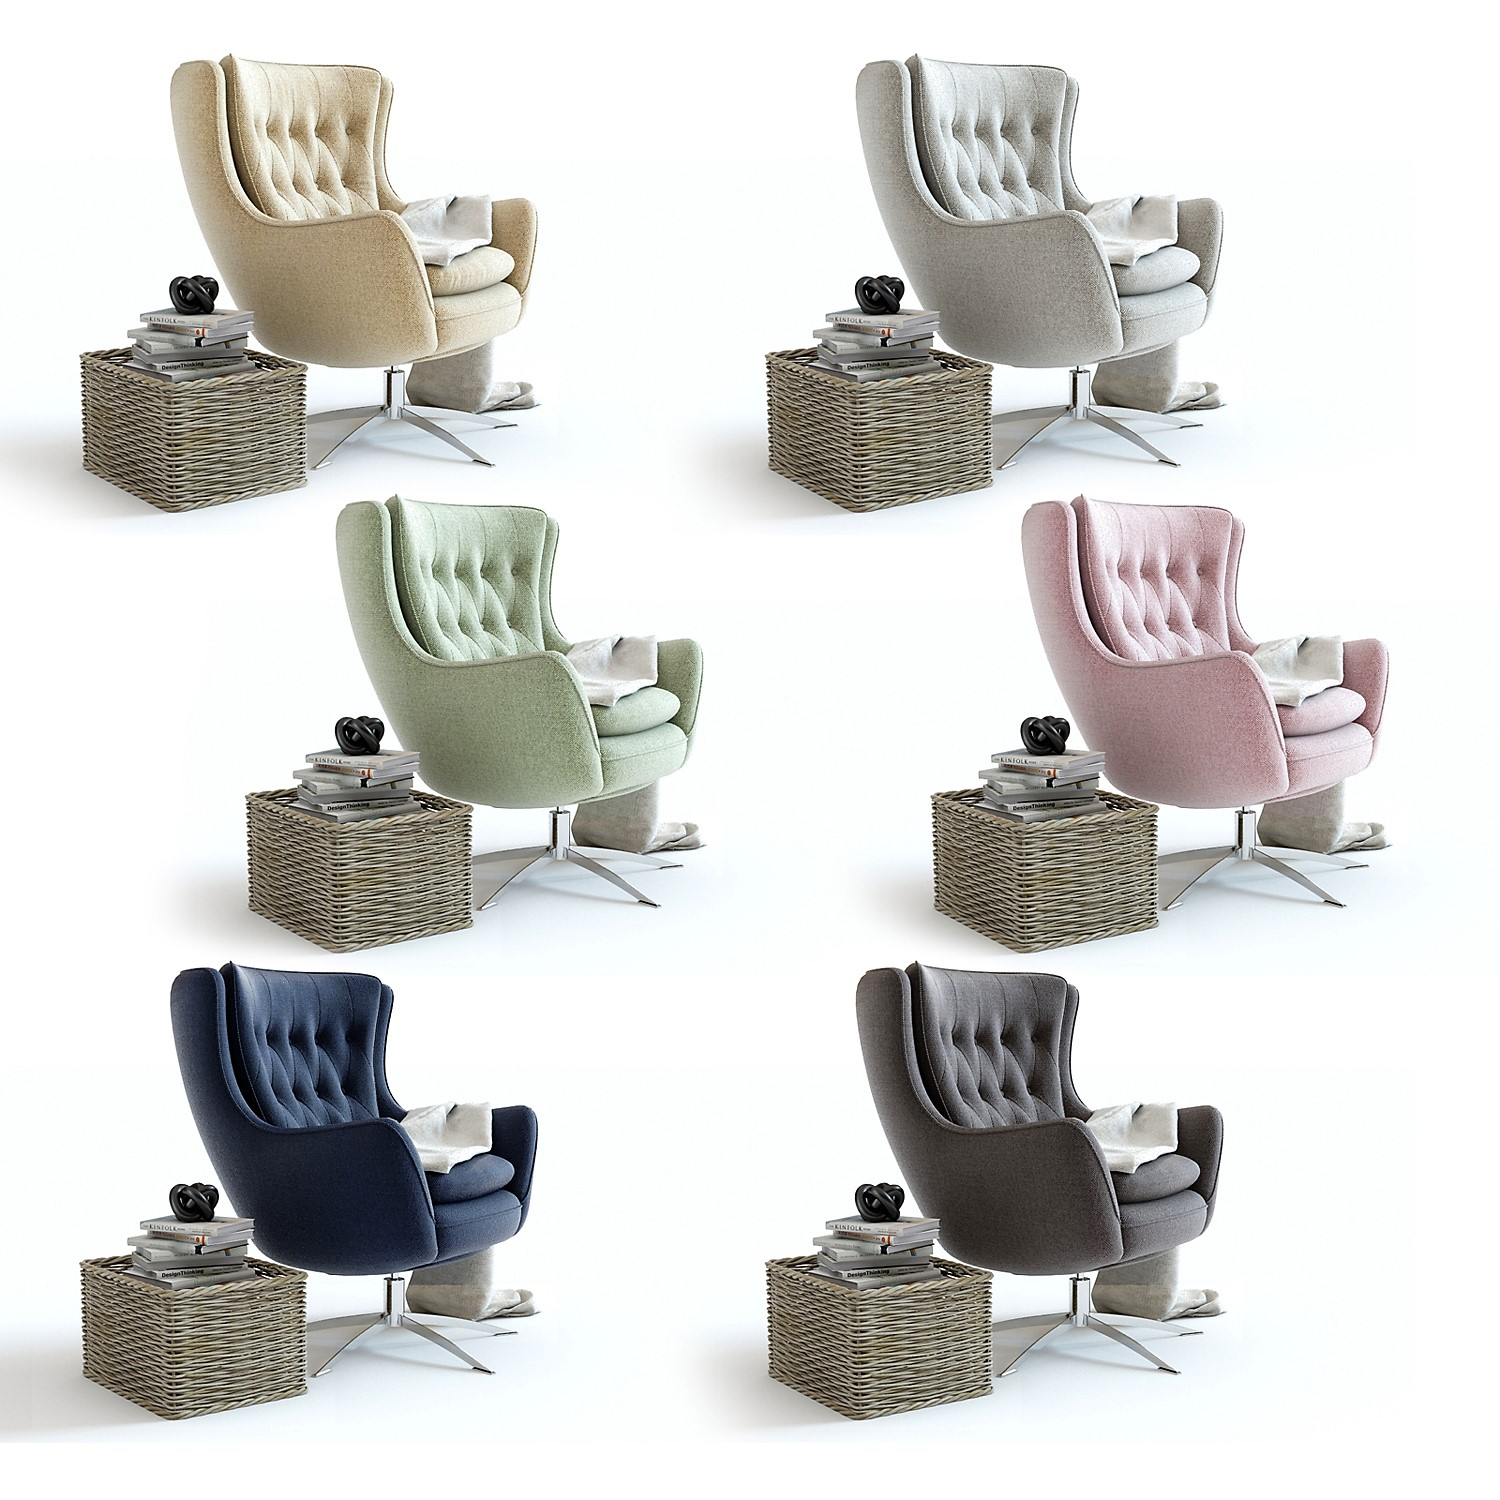 wells chair, online 3d modeling service